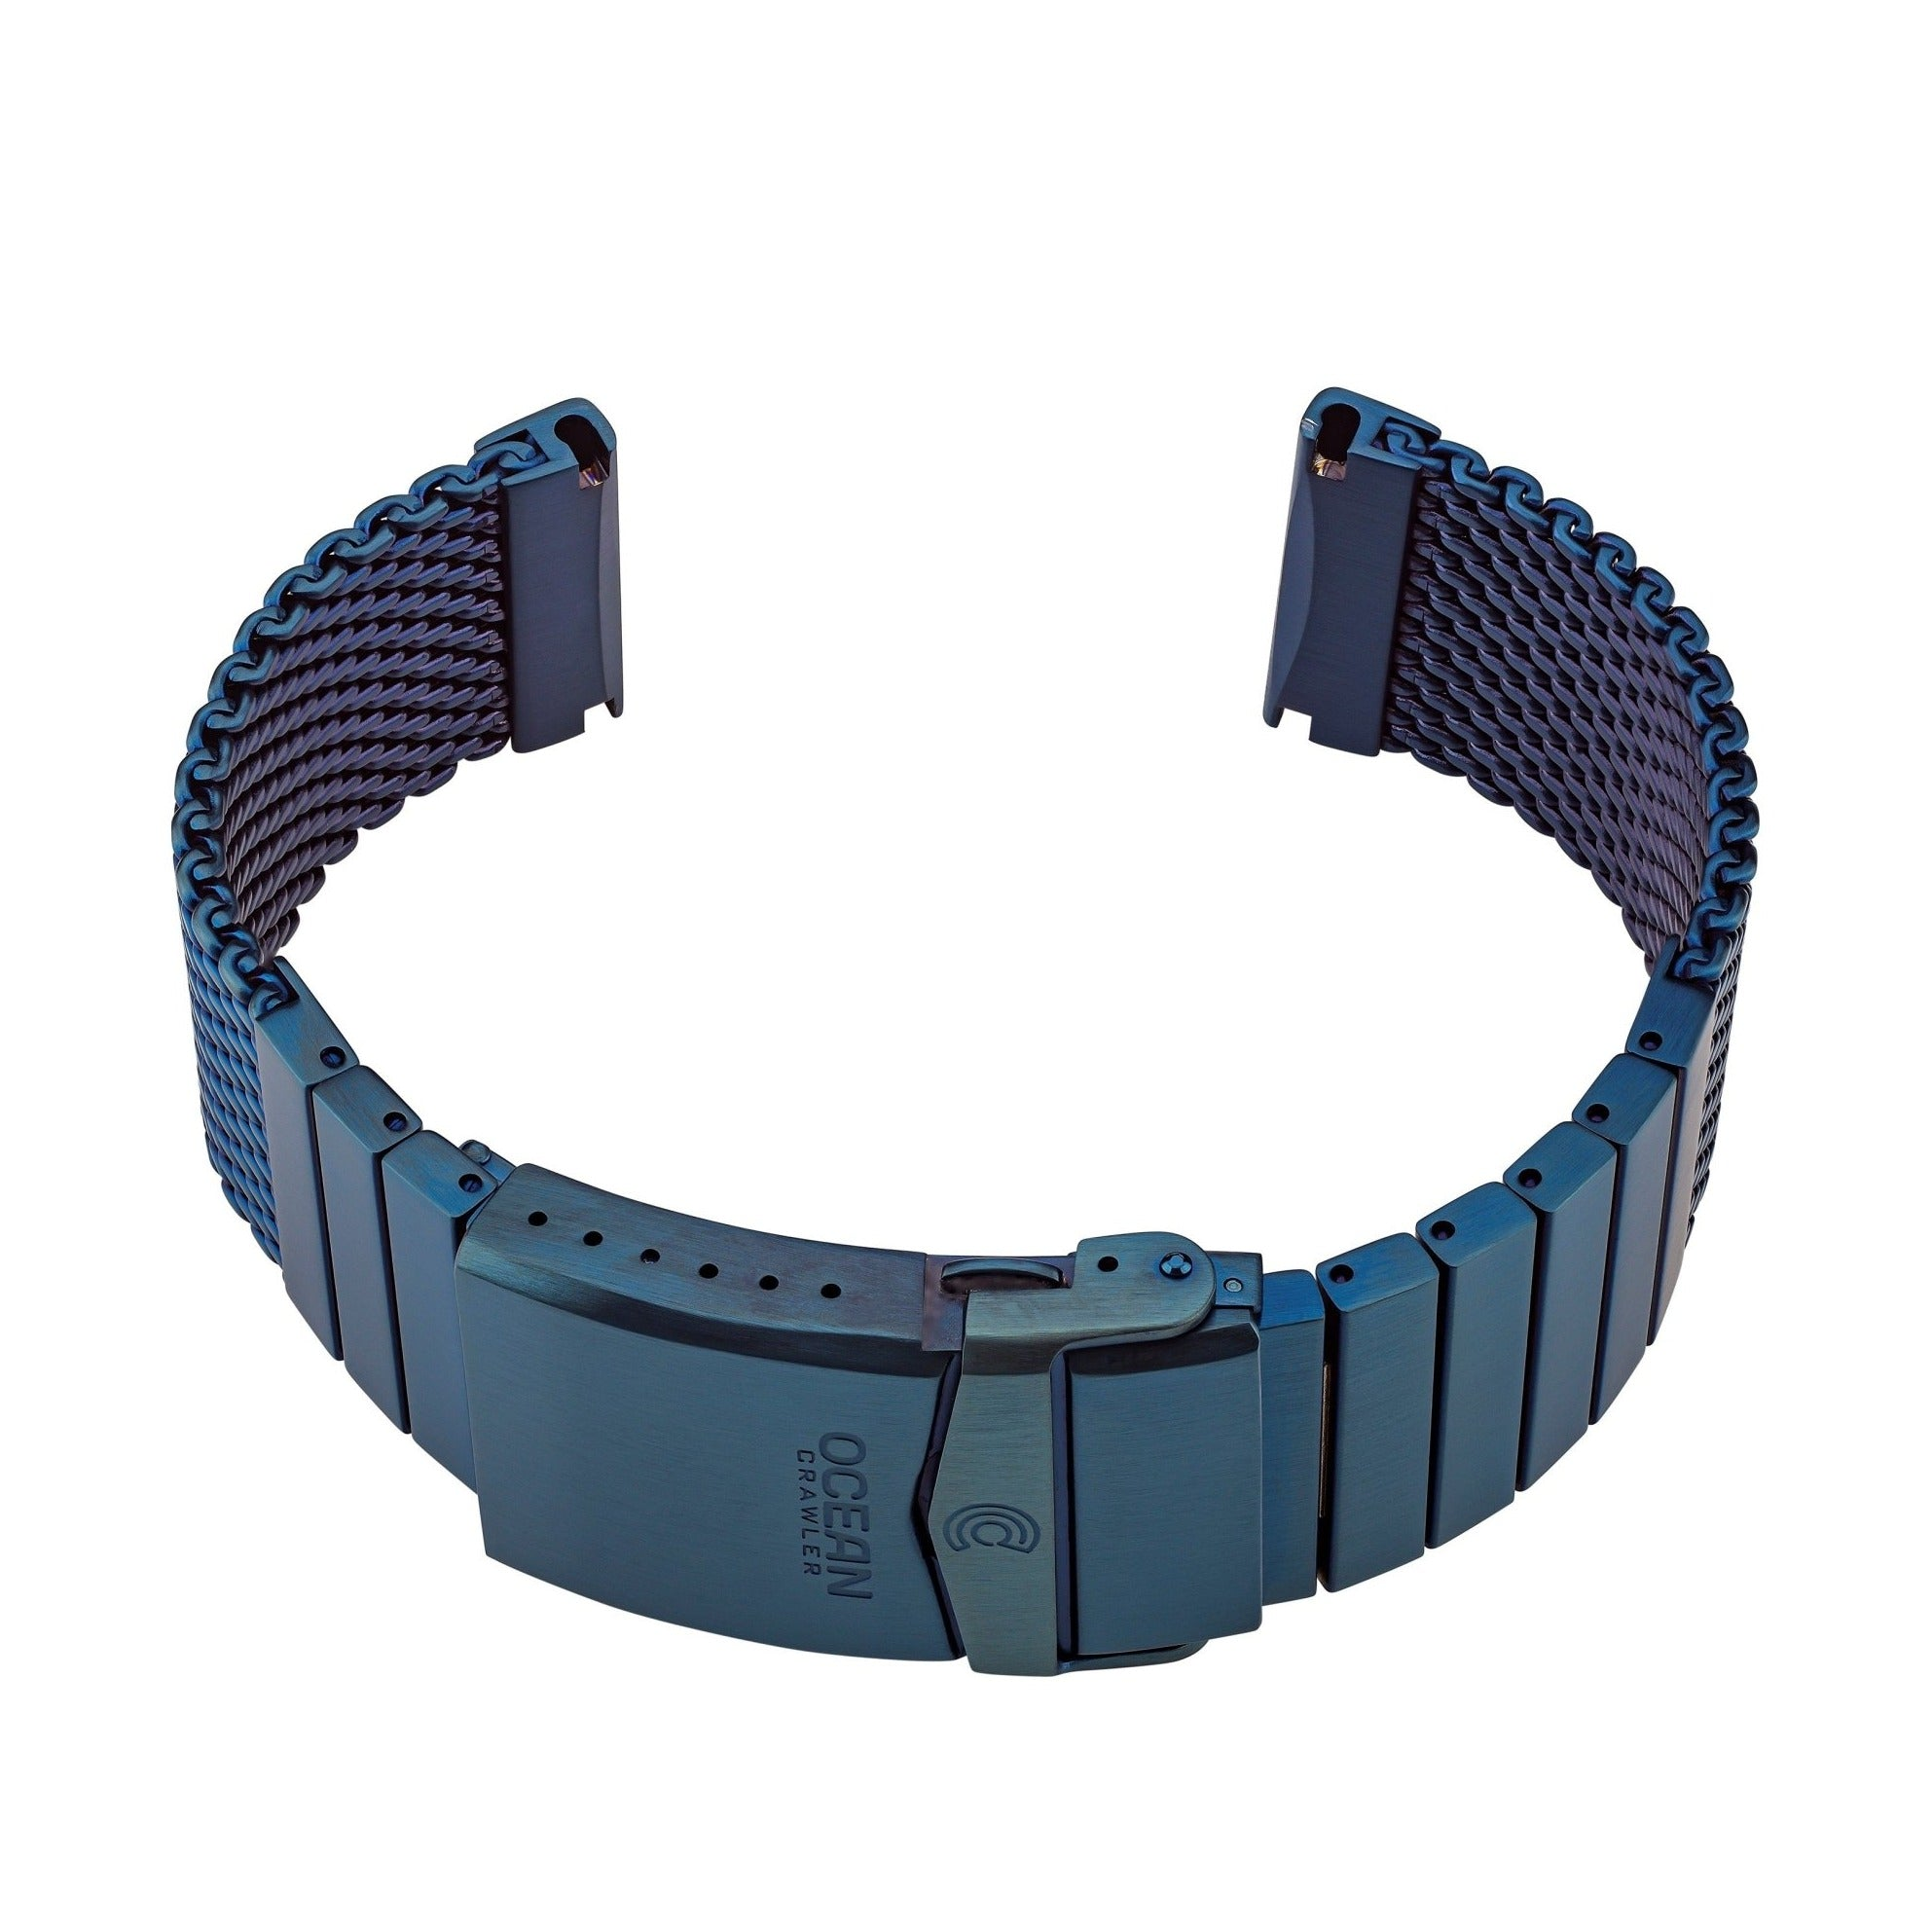 Ocean Crawler Shark Mesh With Straight Ends - Blue DLC - 22mm - Ocean Crawler Watch Co.